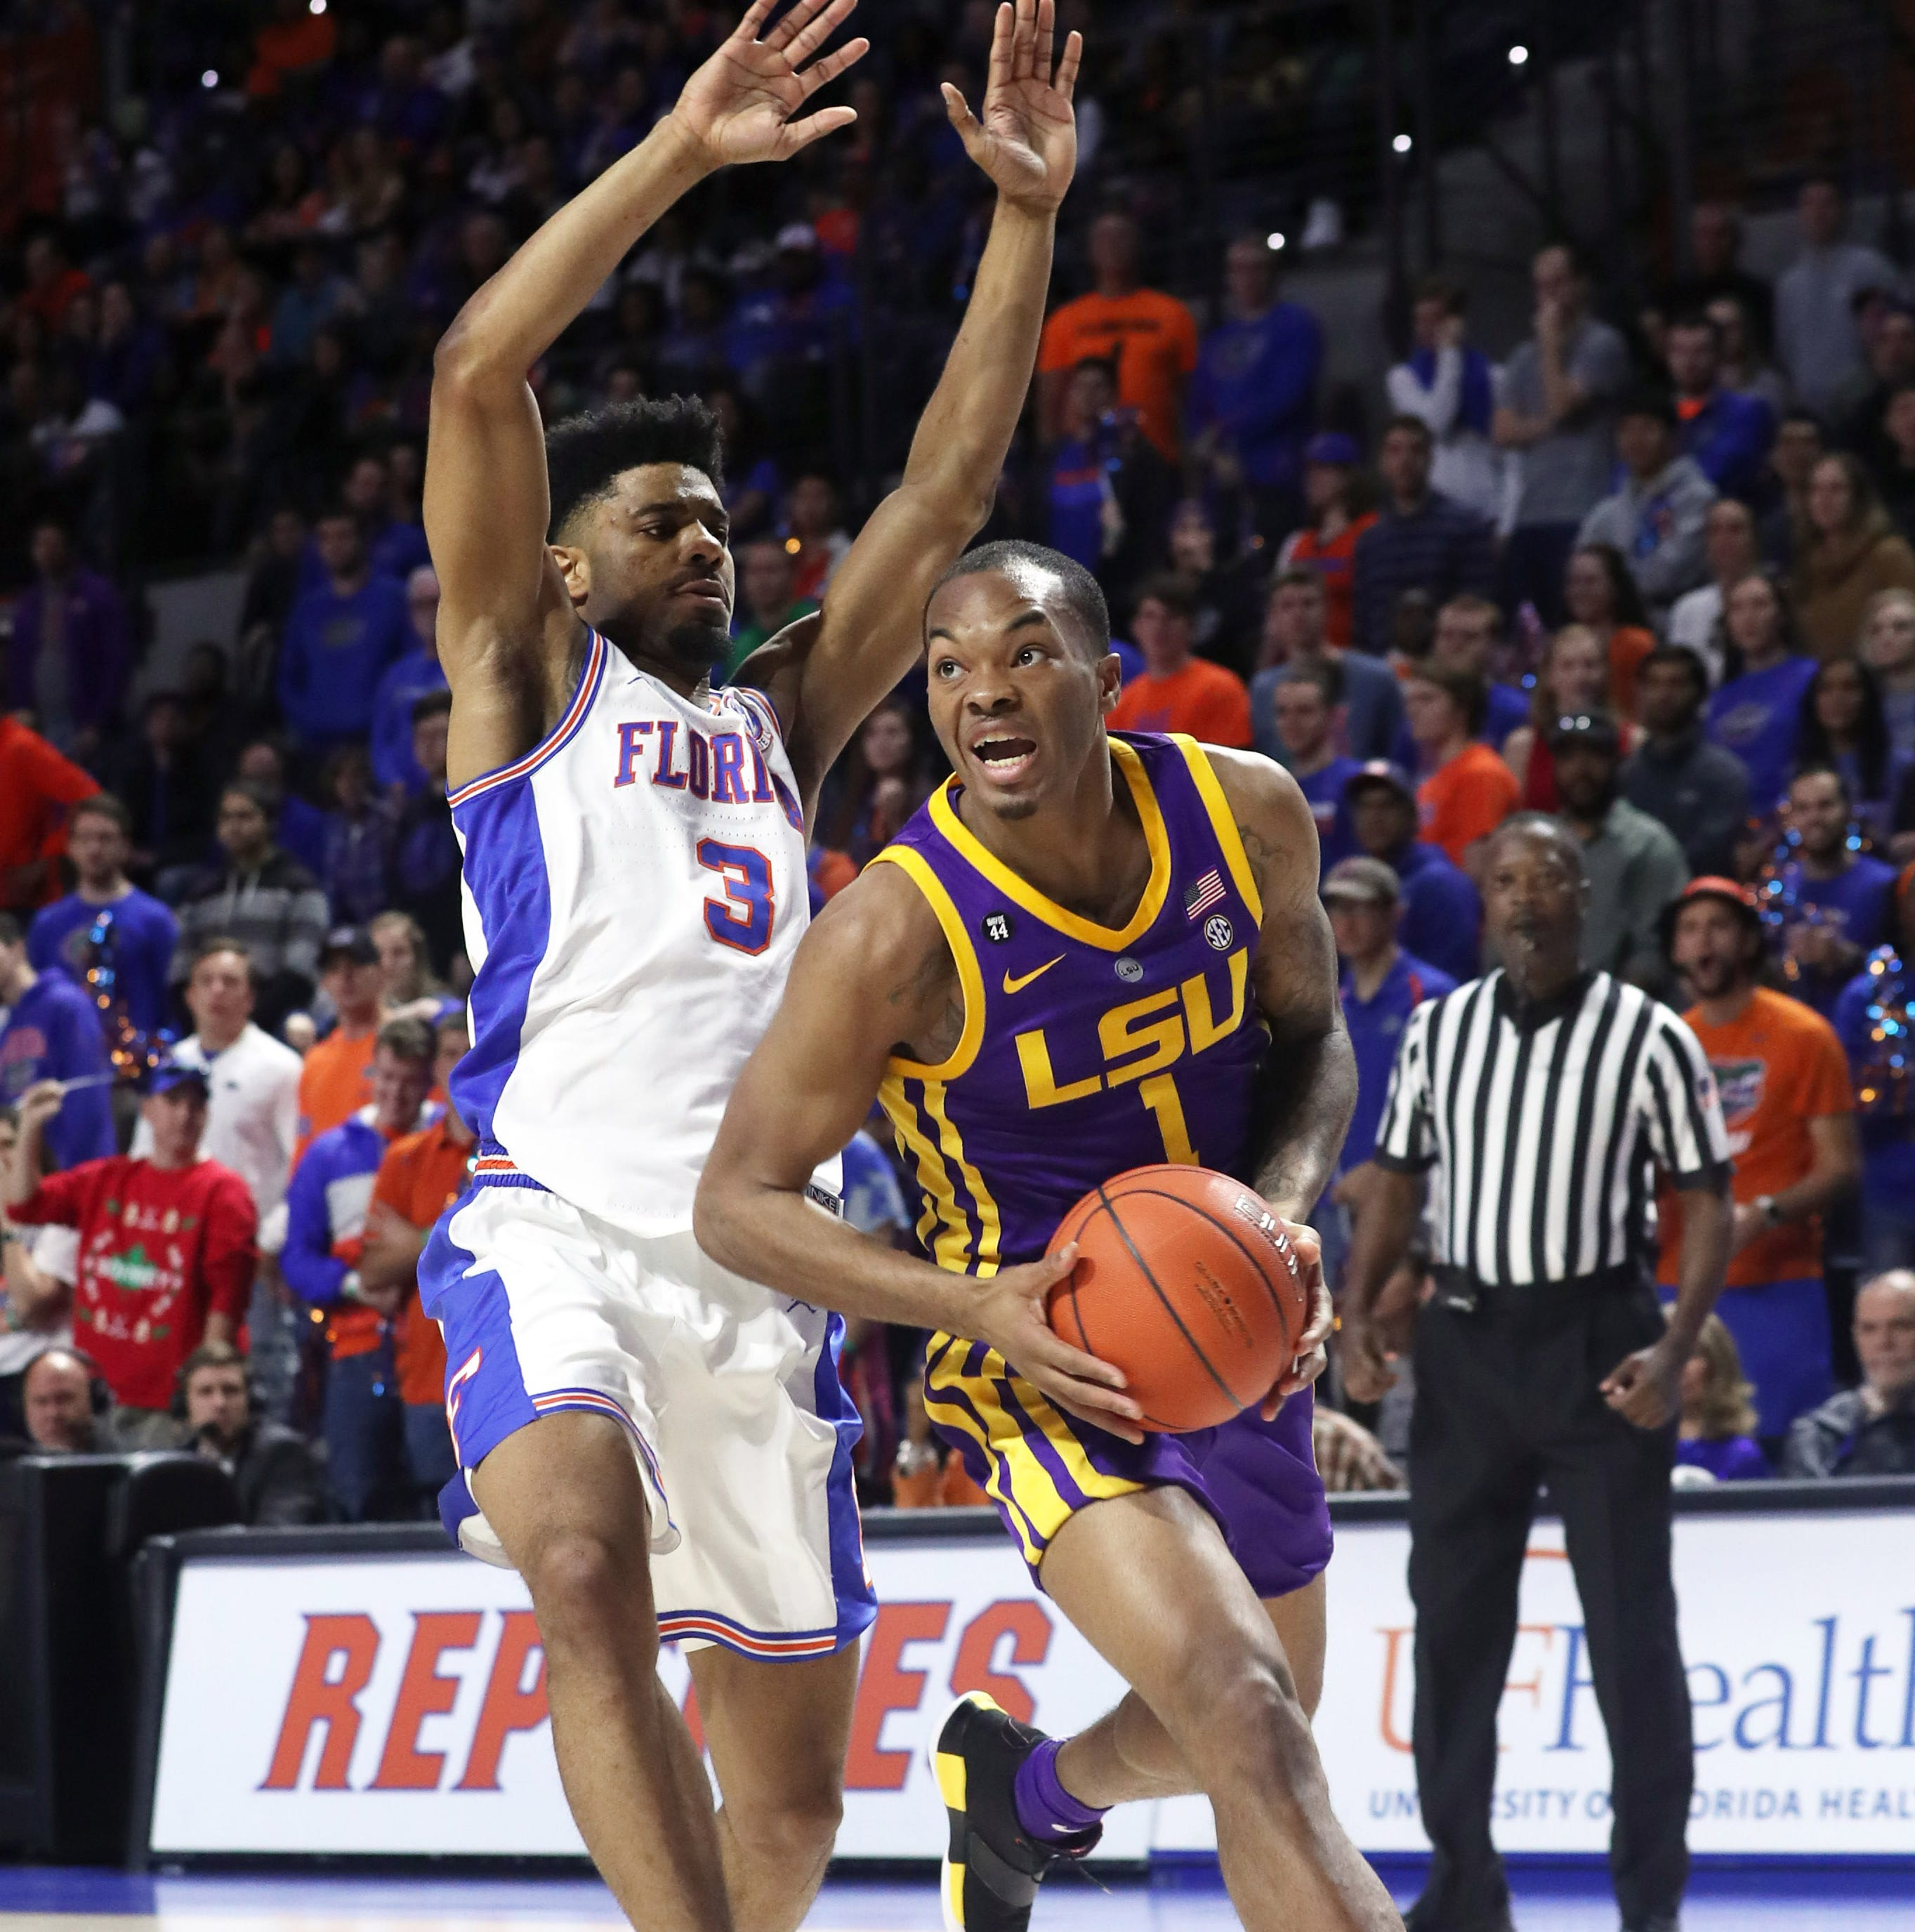 LSU guard Javonte Smart practiced Tuesday, but status for SEC Tournament remains on hold